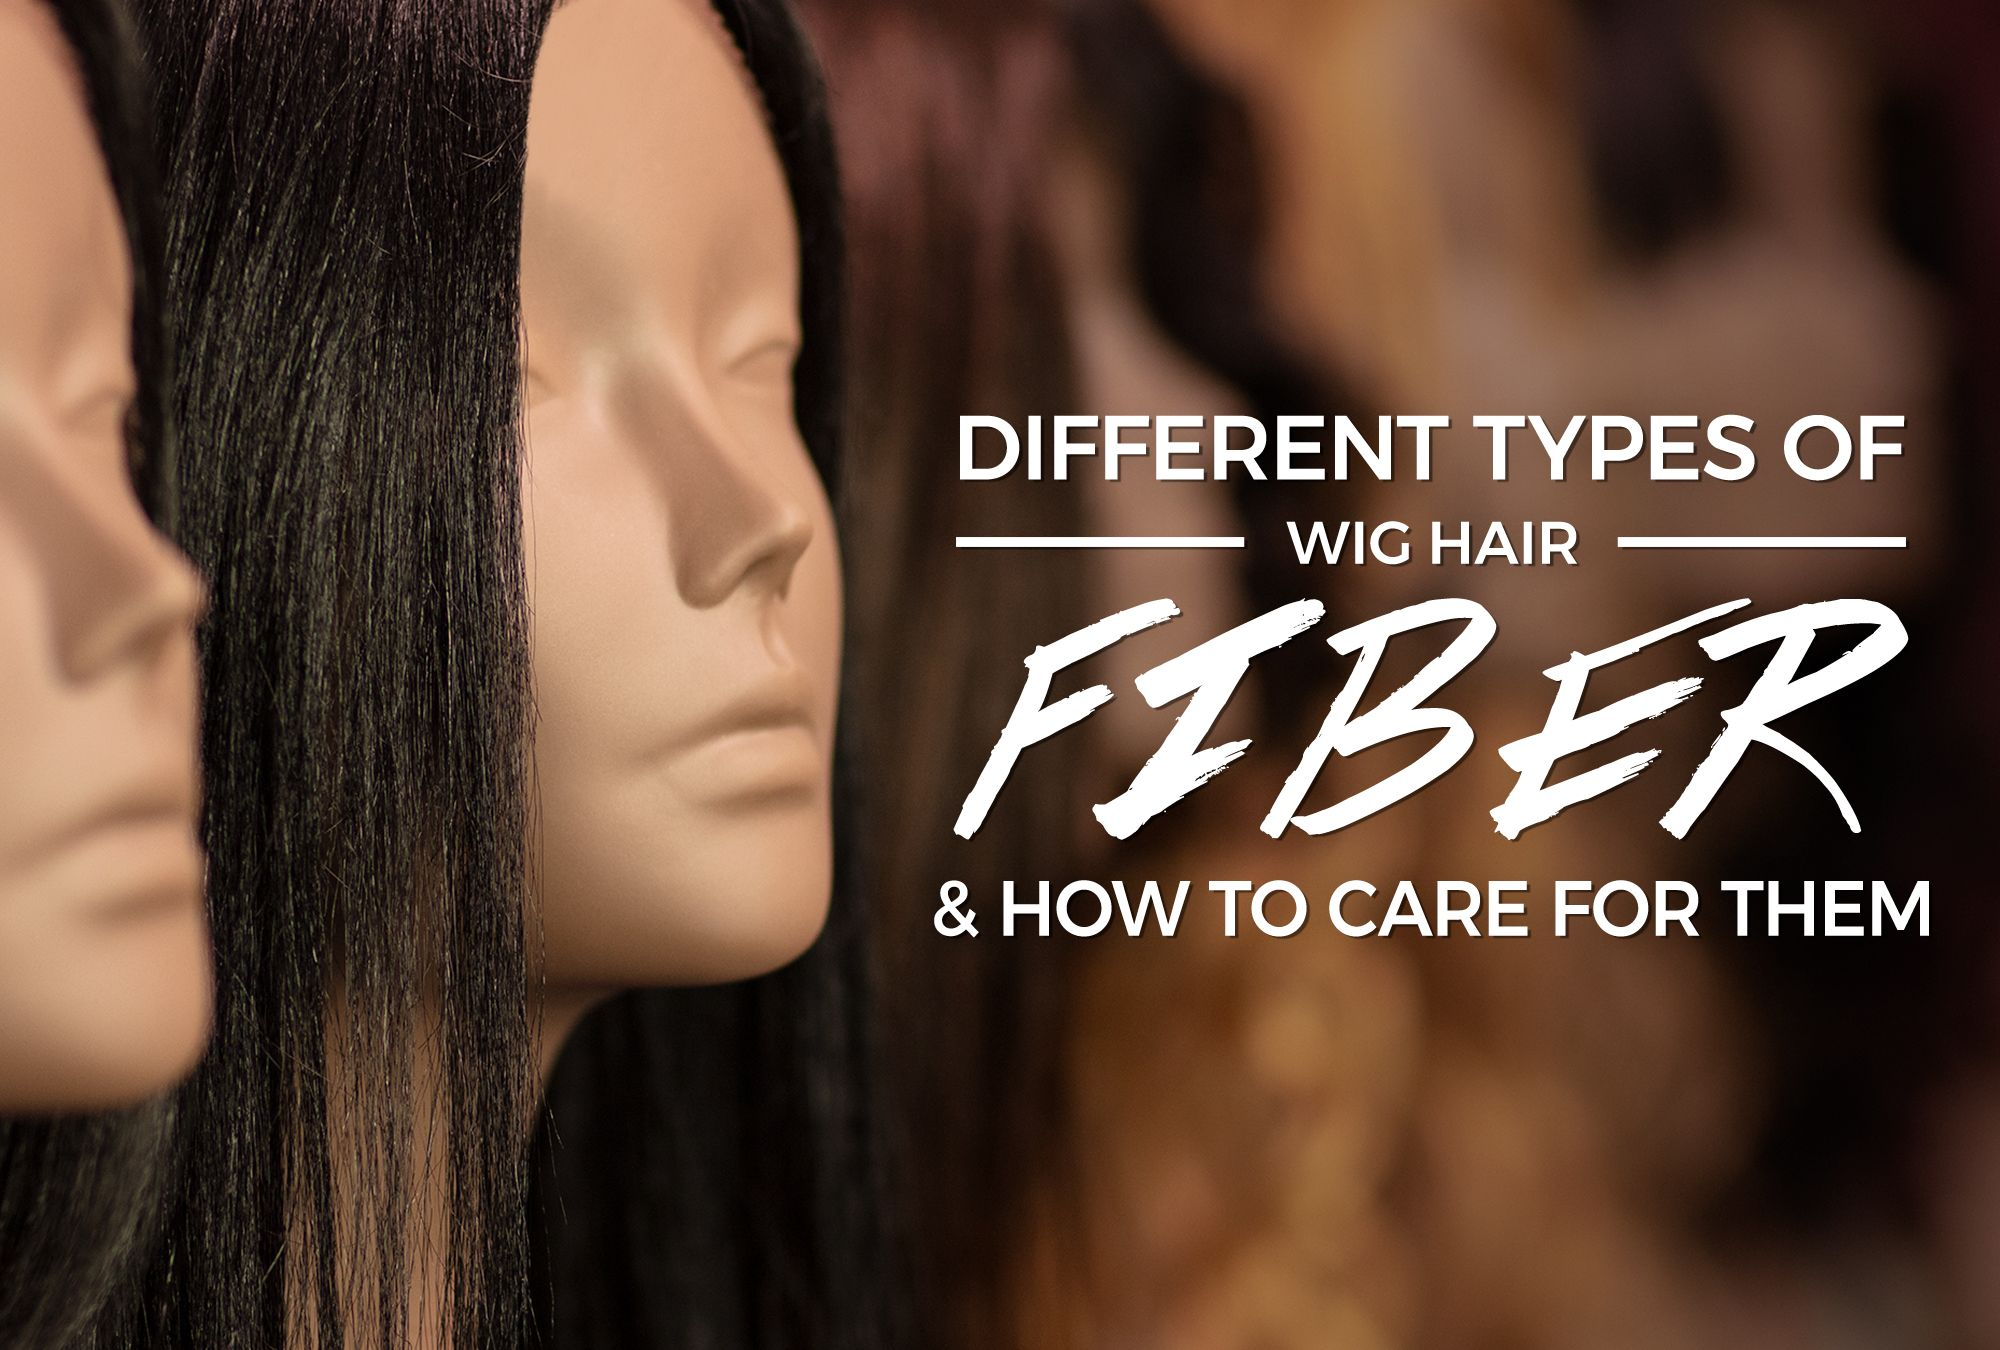 Different Types of Wig Hair Fiber & How to Care for Them